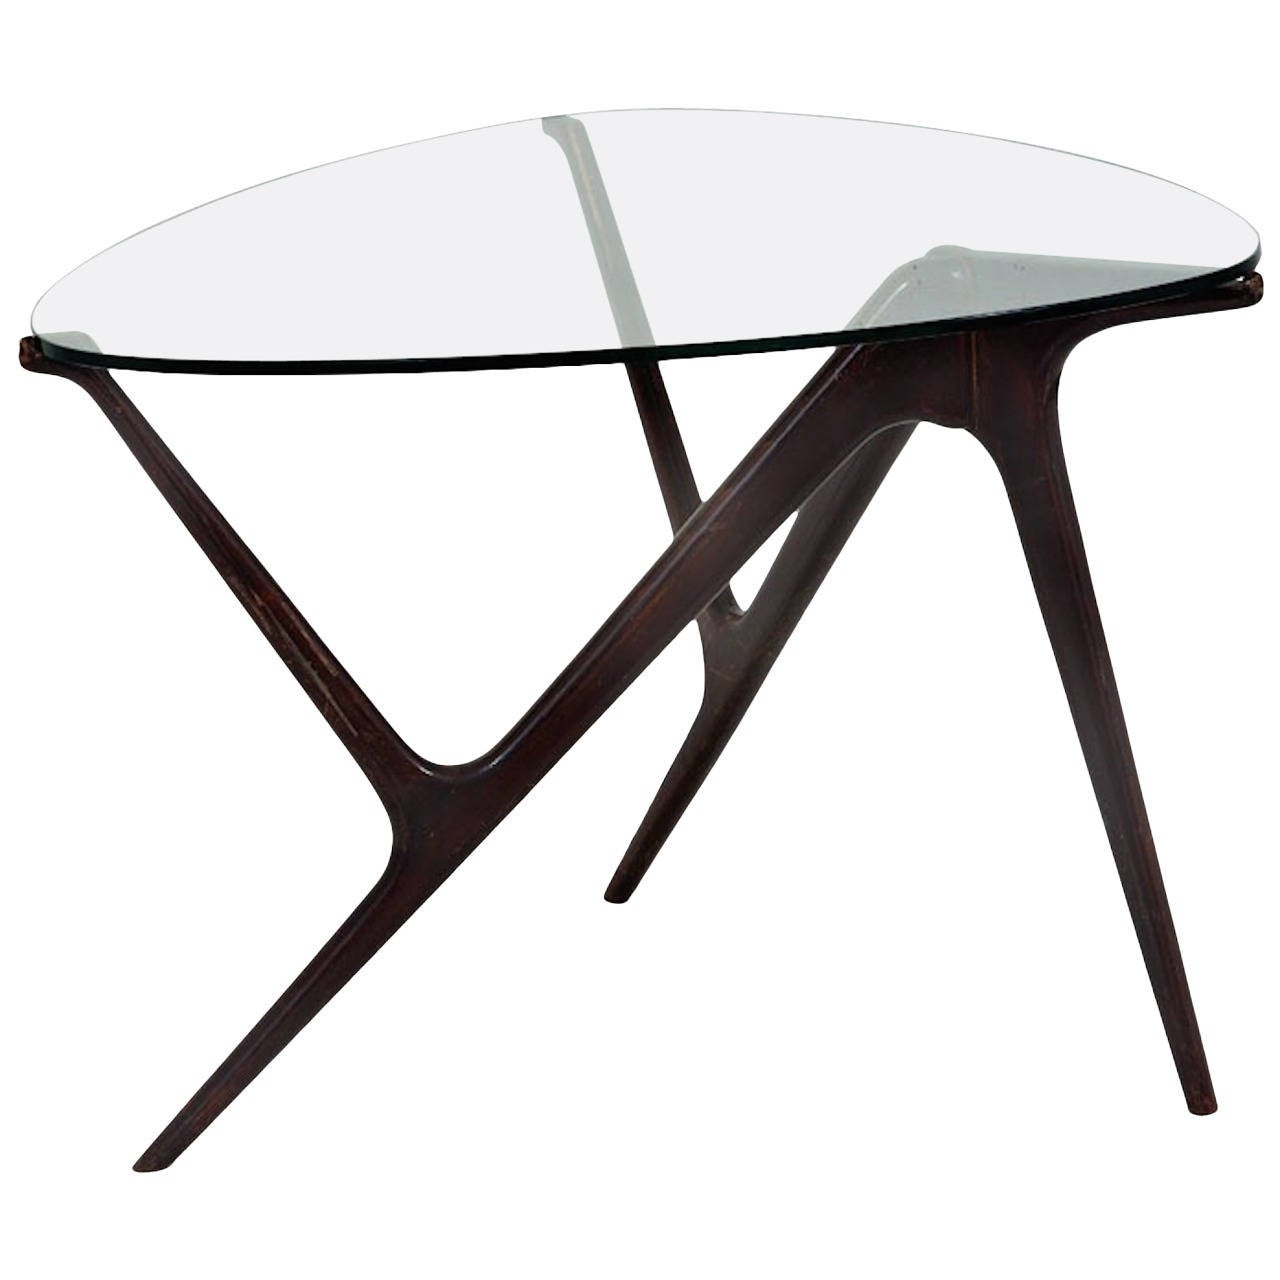 1950s Italian Occasional Table in the Style of Carlo Mollino For Sale